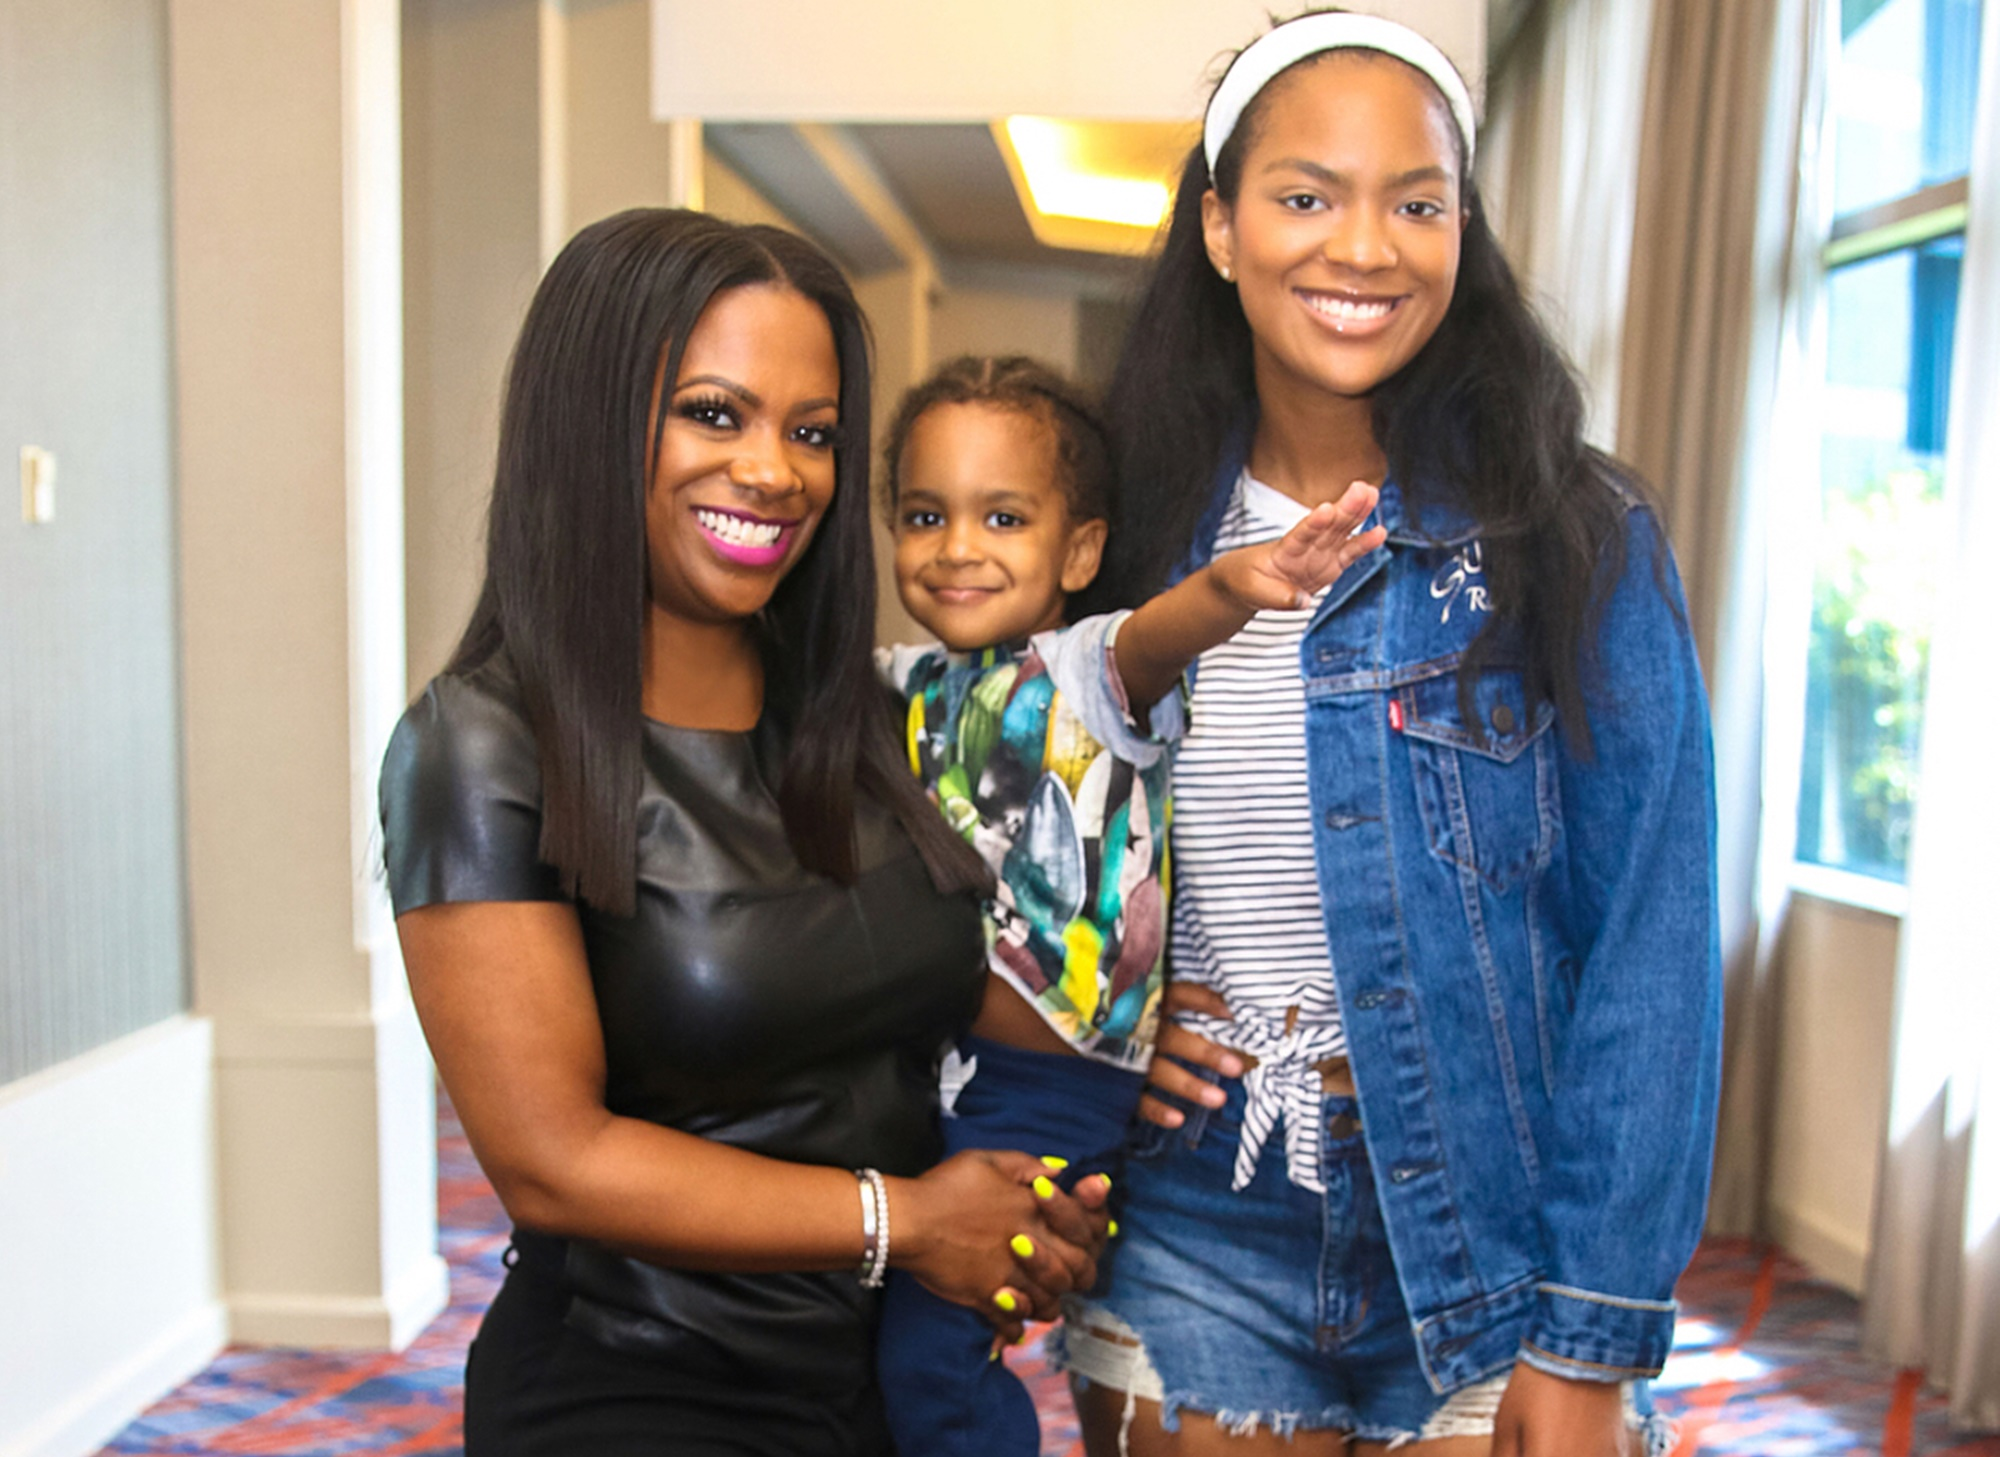 """kandi-burruss-gushes-over-her-two-kids-with-the-cutest-throwback-photo"""